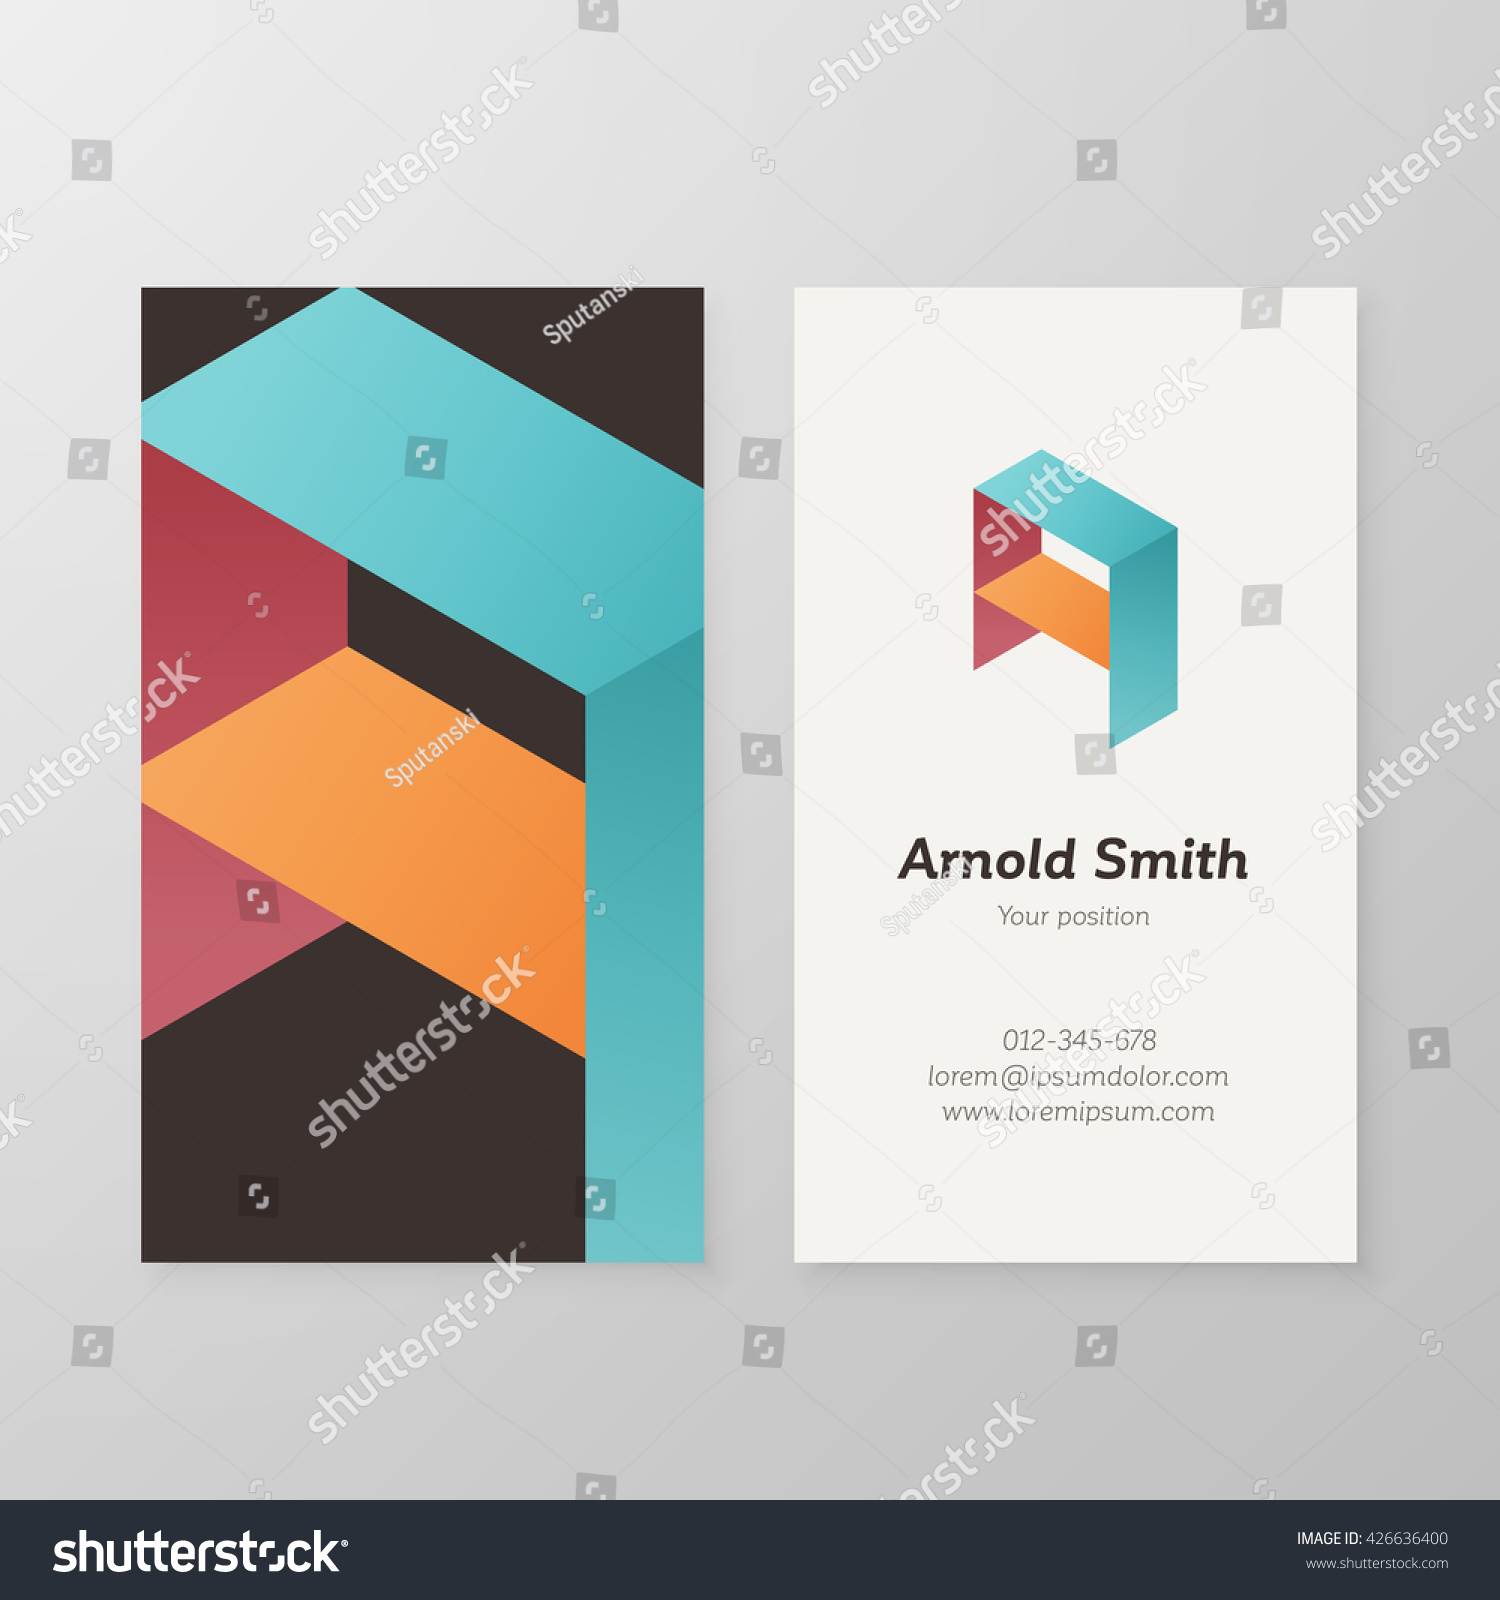 Vector graphic design business logo - Business Card Isometric Logo Letter A Vector Template Vector Business Card Personal Logo Sign Graphic